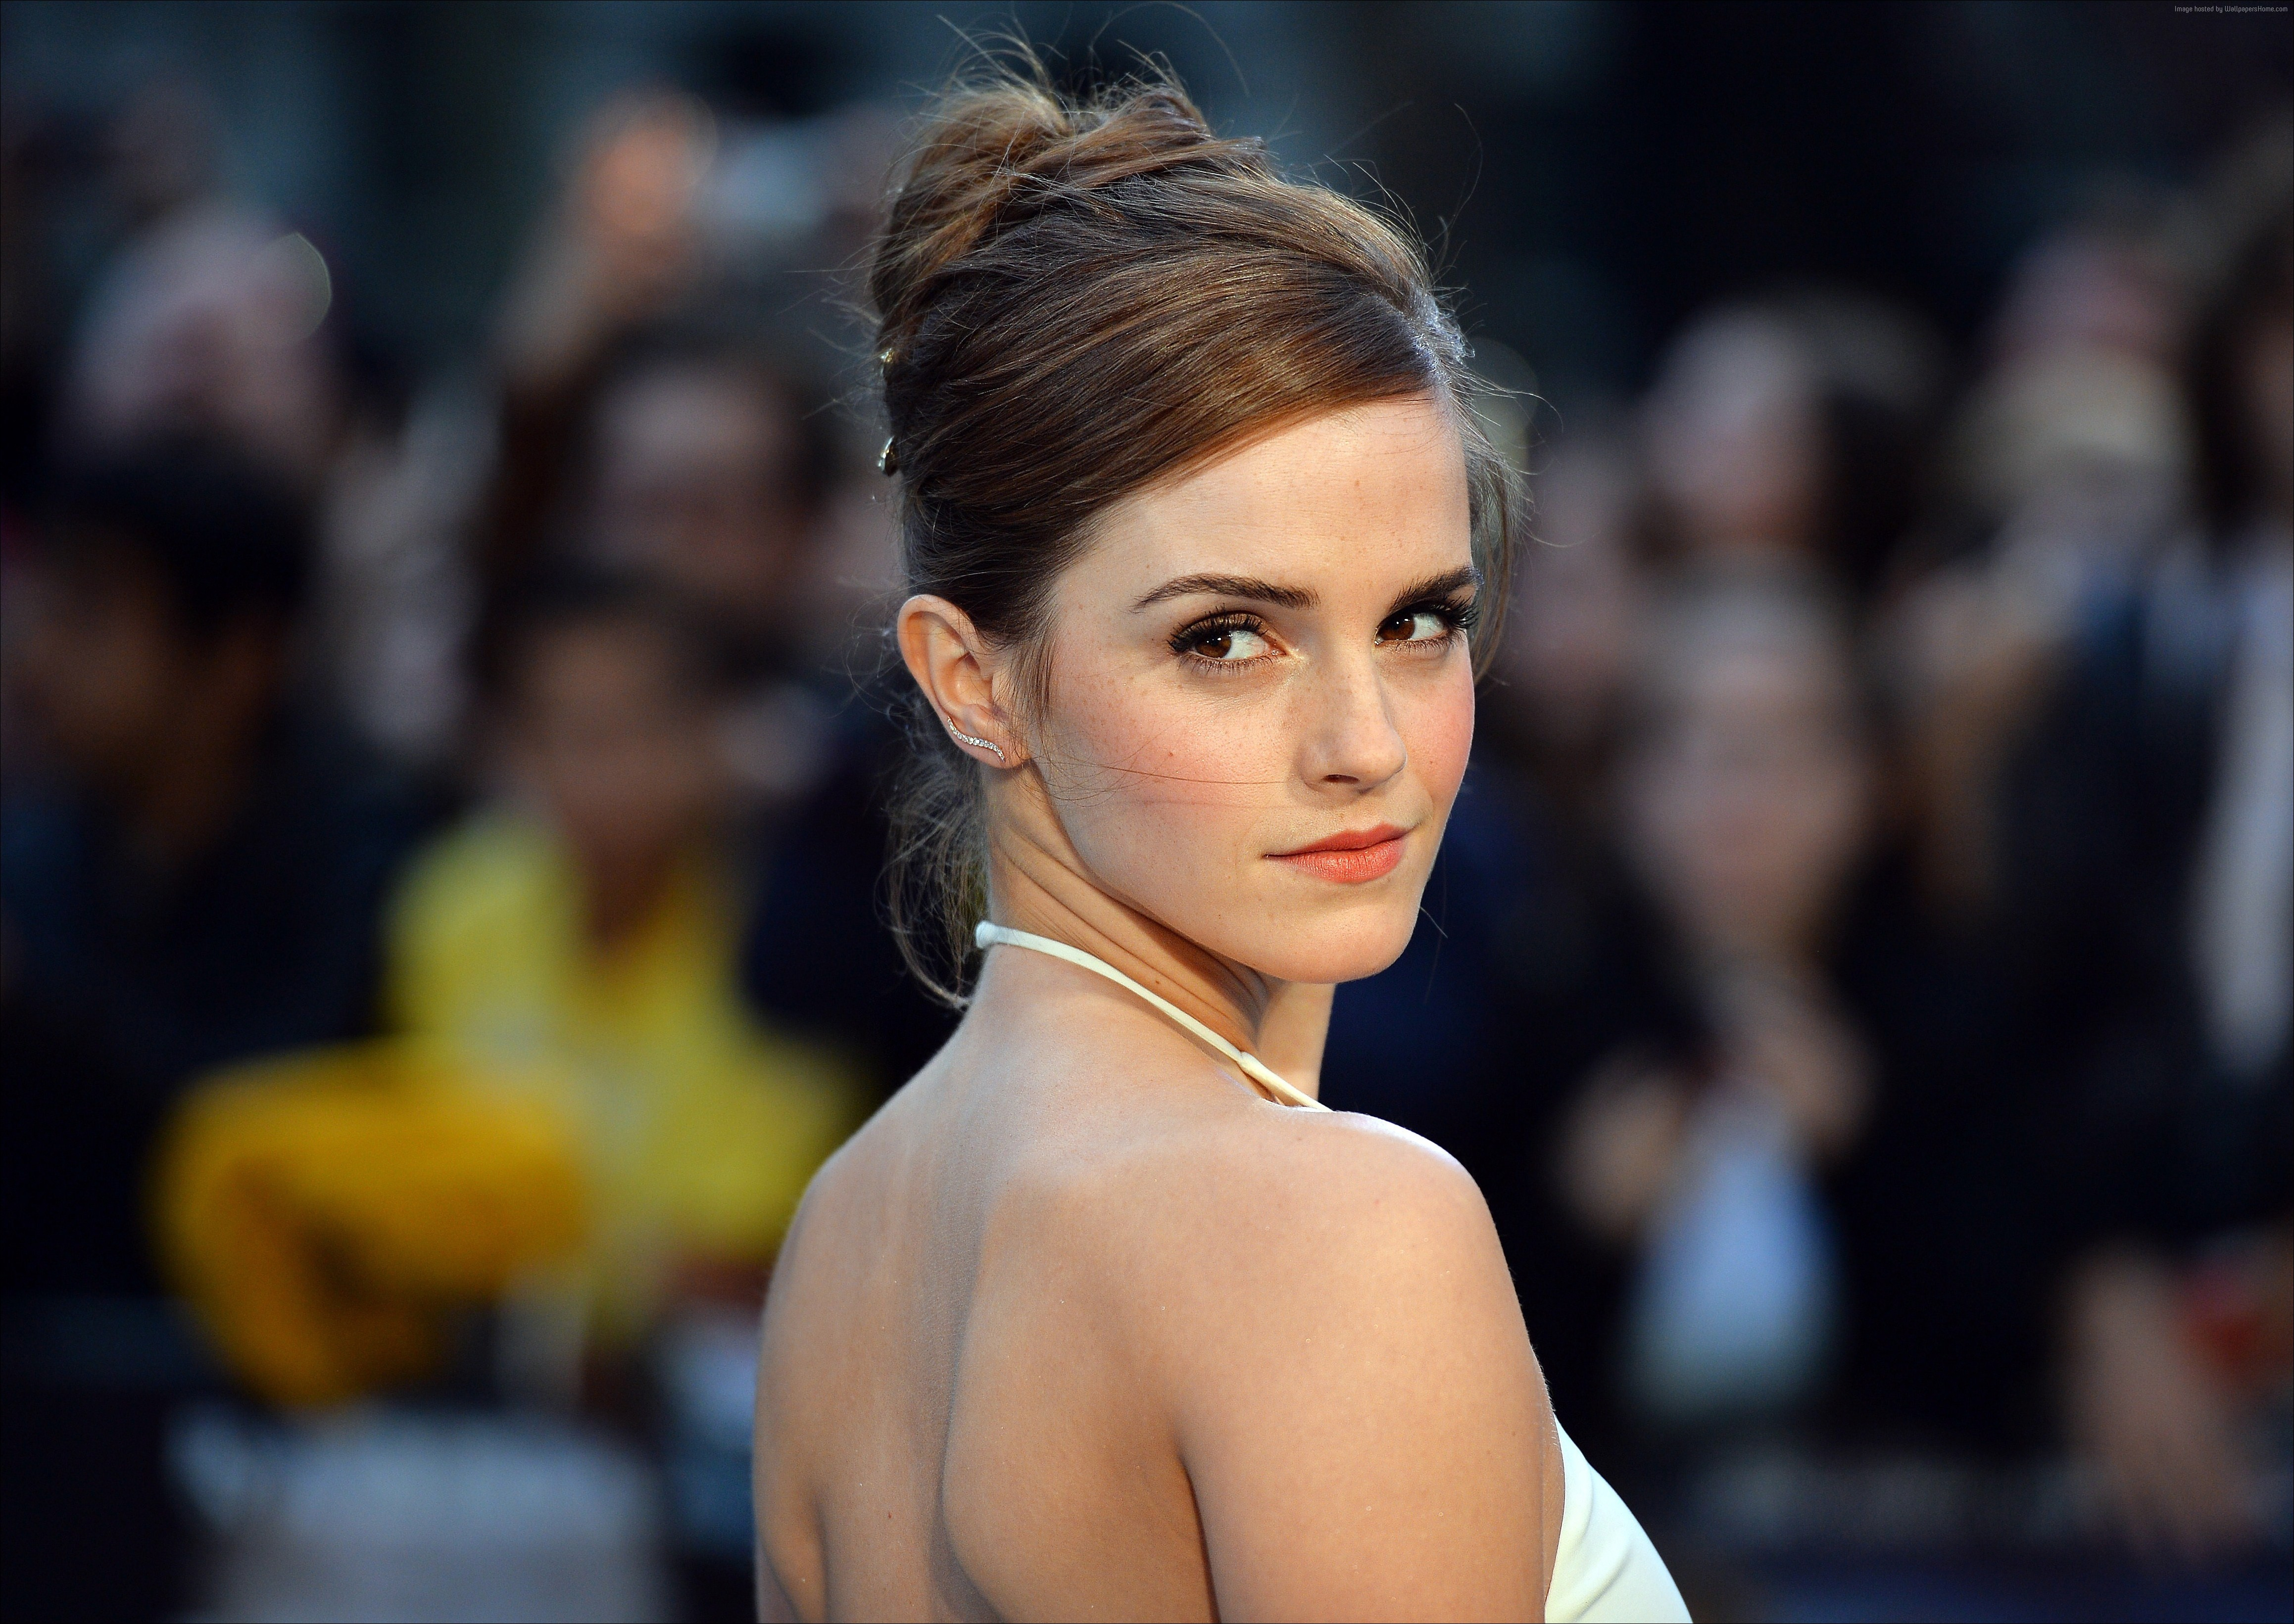 Emma Watson In White Dress